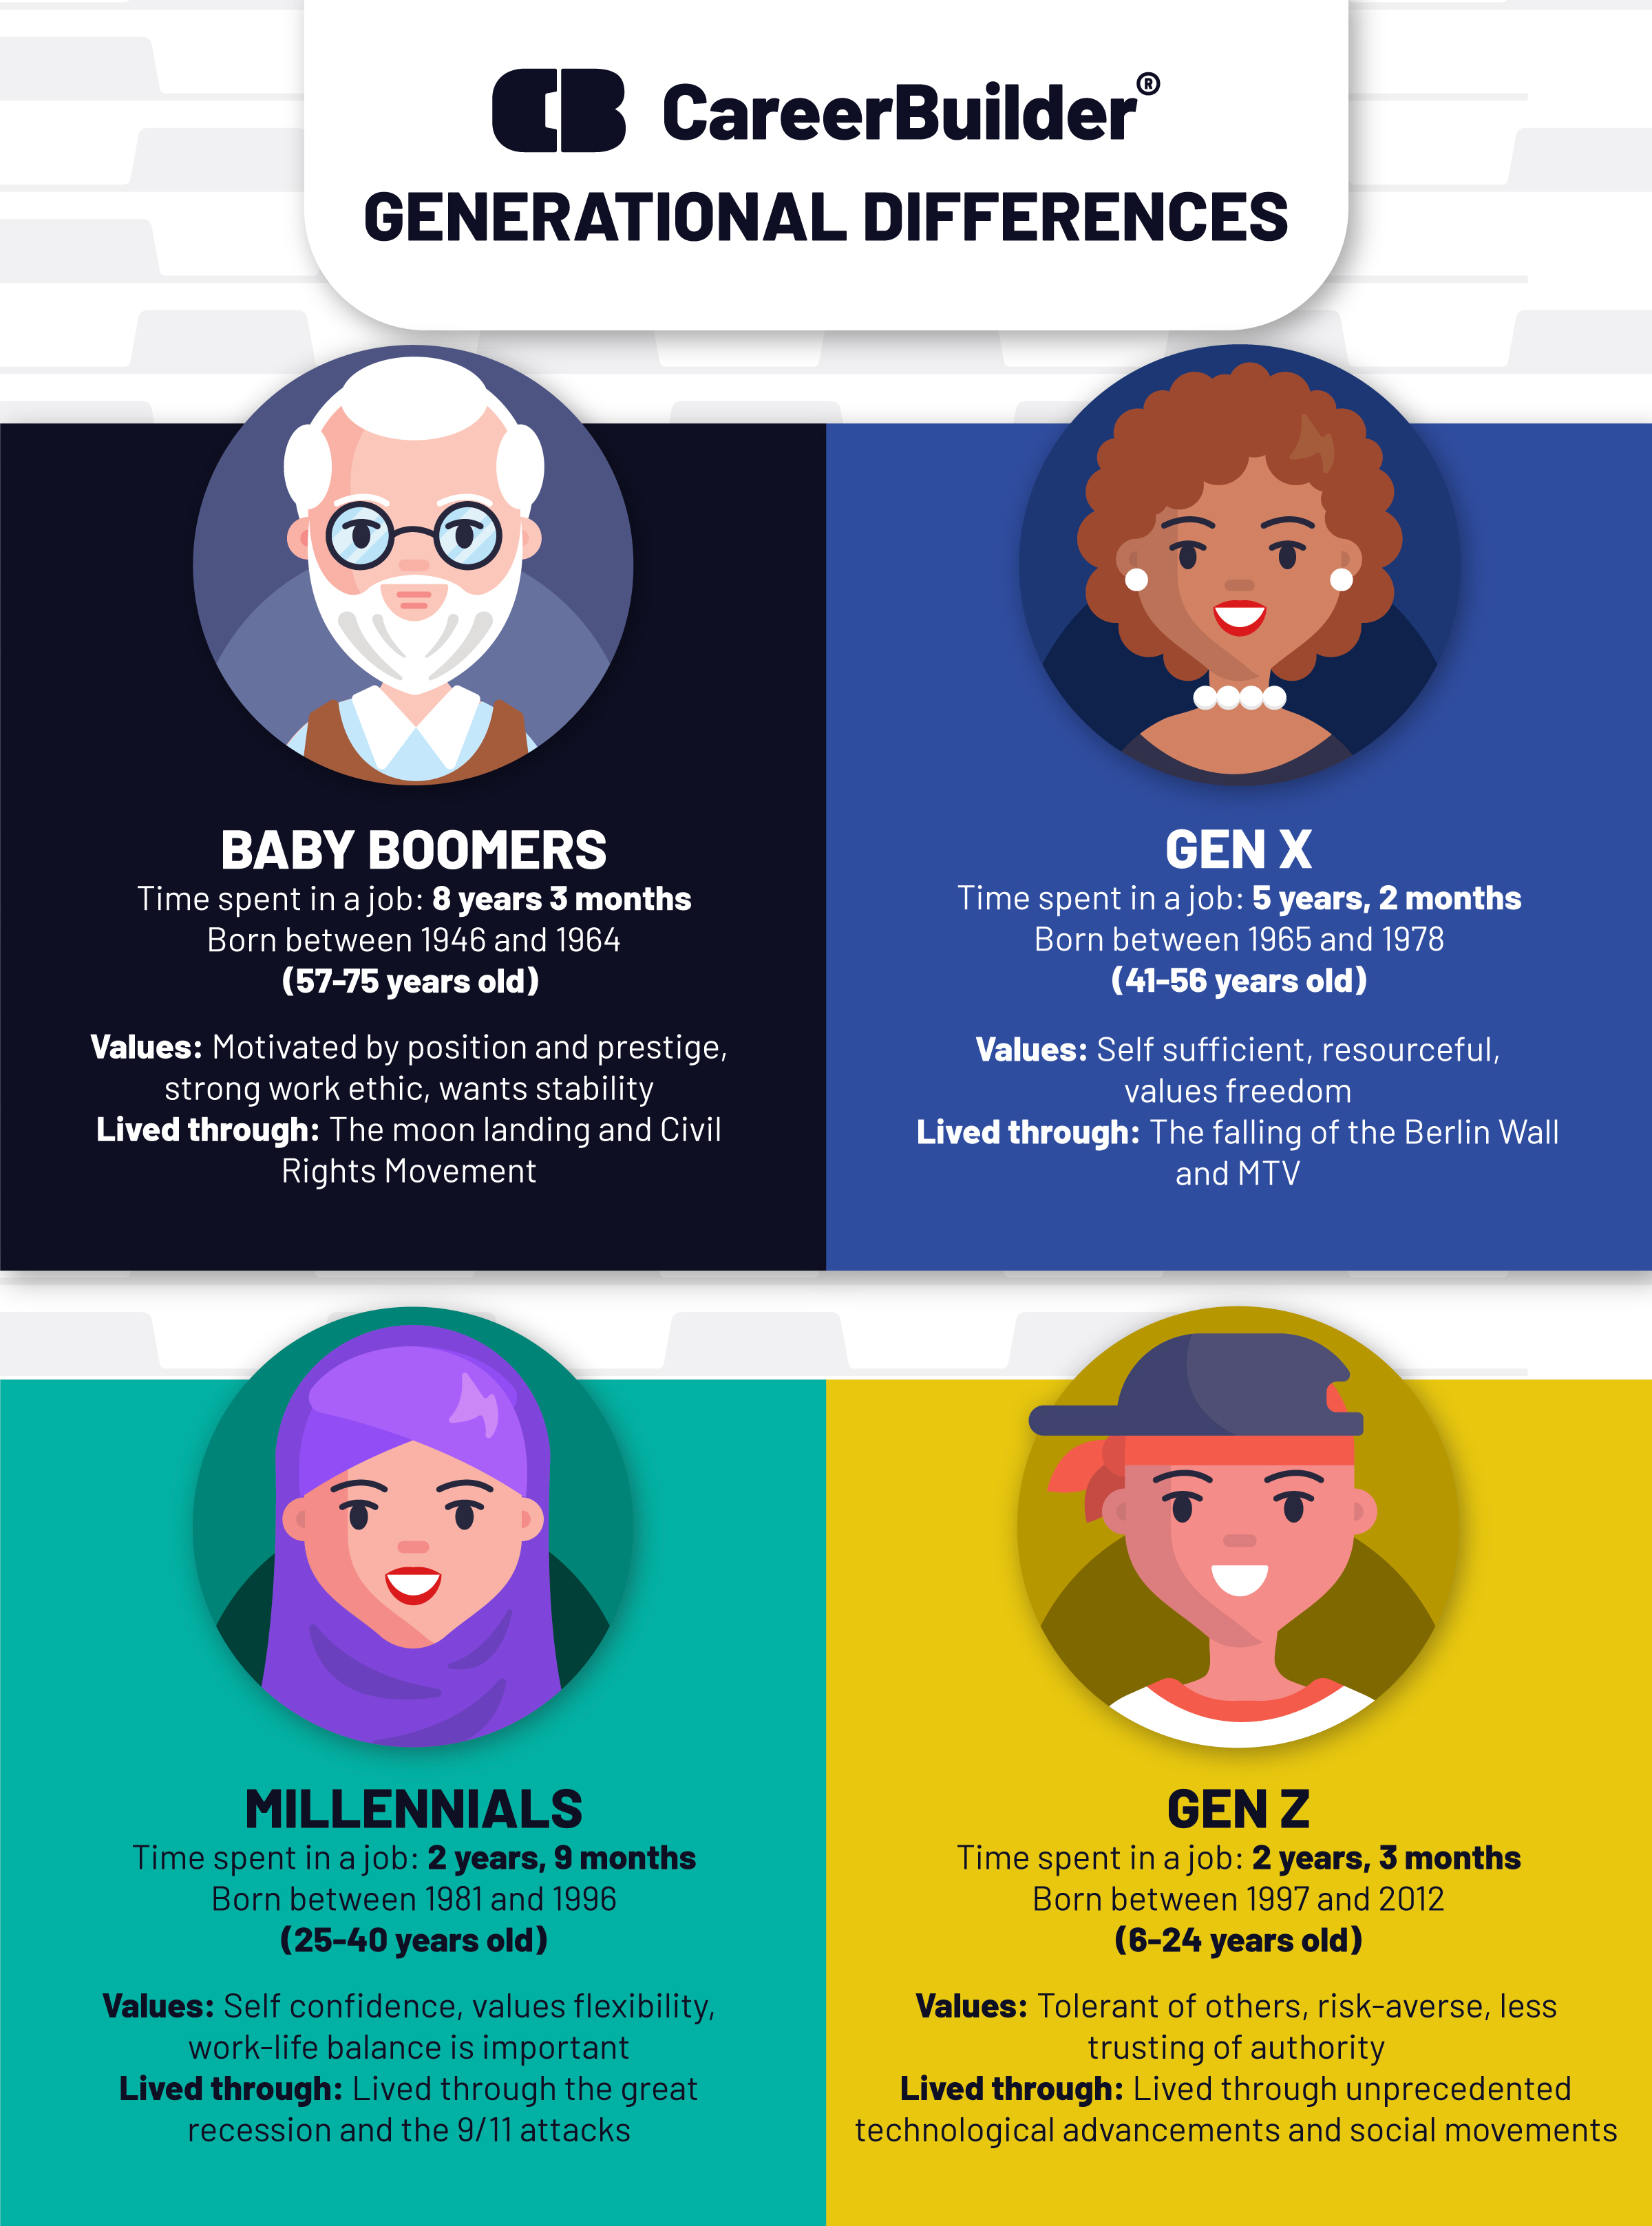 4 generations of workers and their work personalities in one graphic.